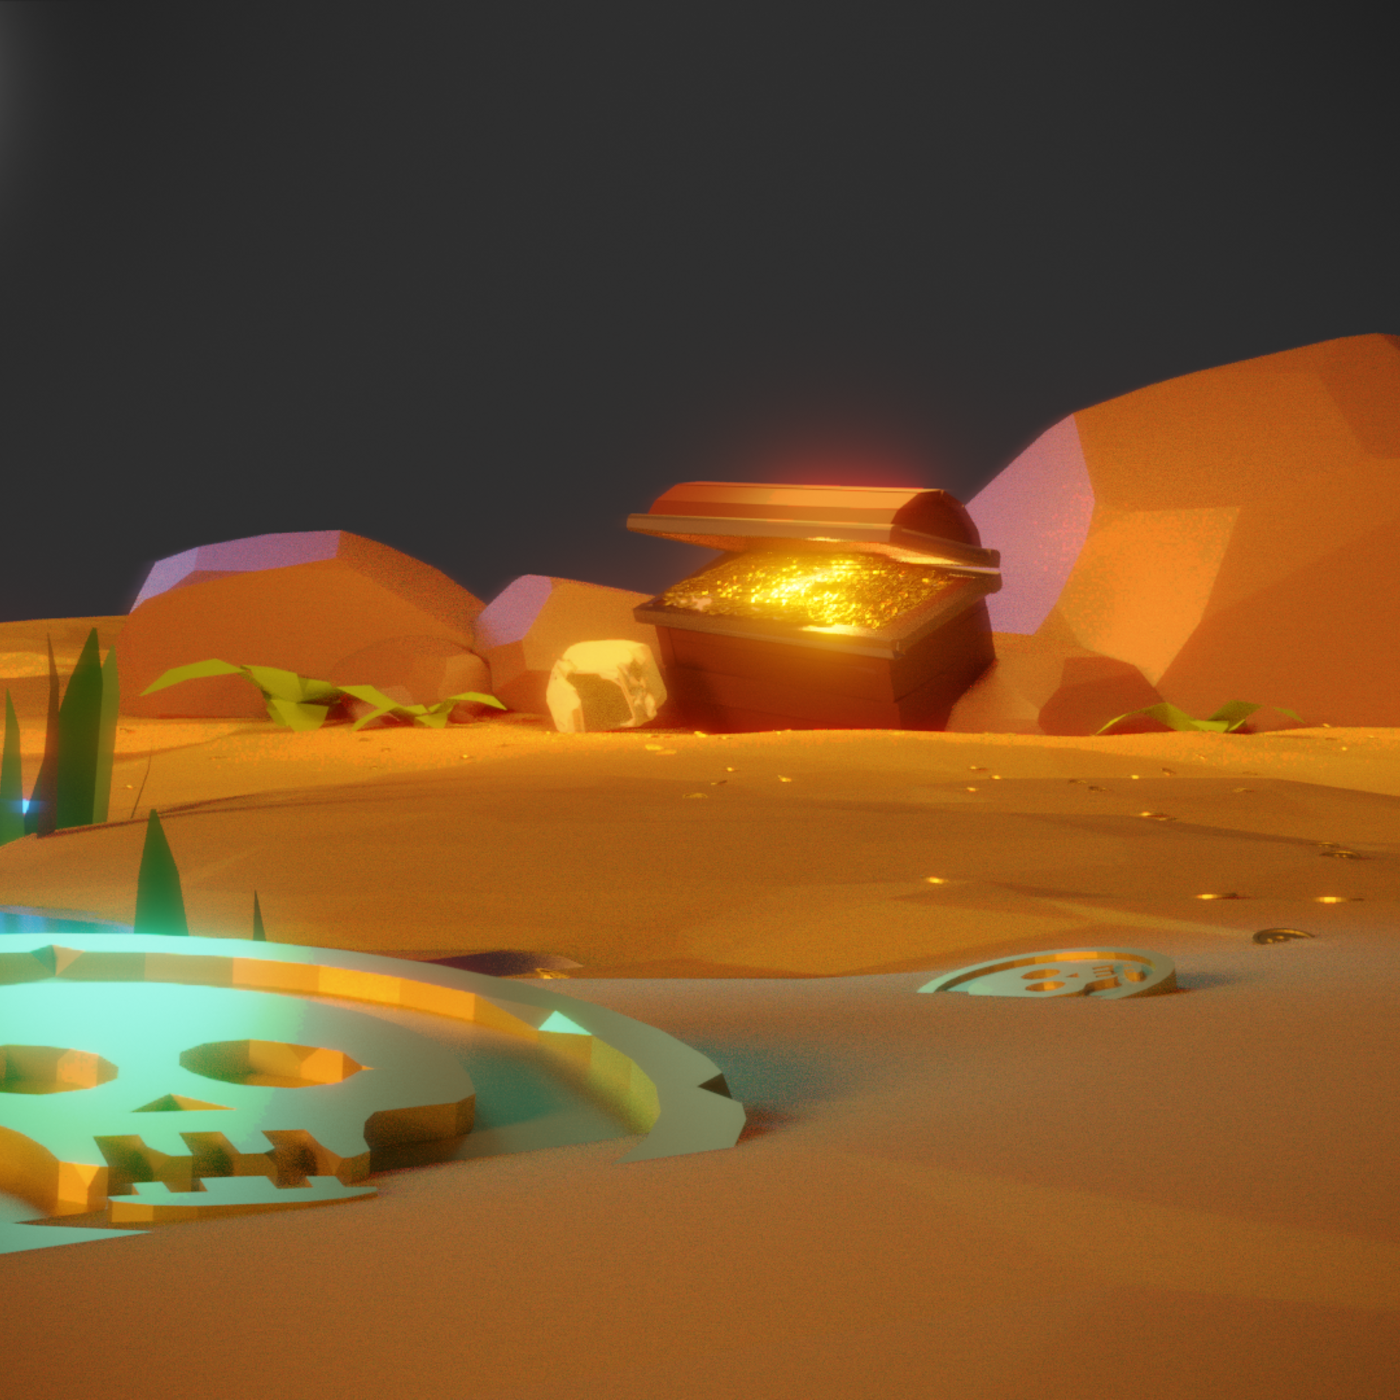 Lost Treasure - Low Poly